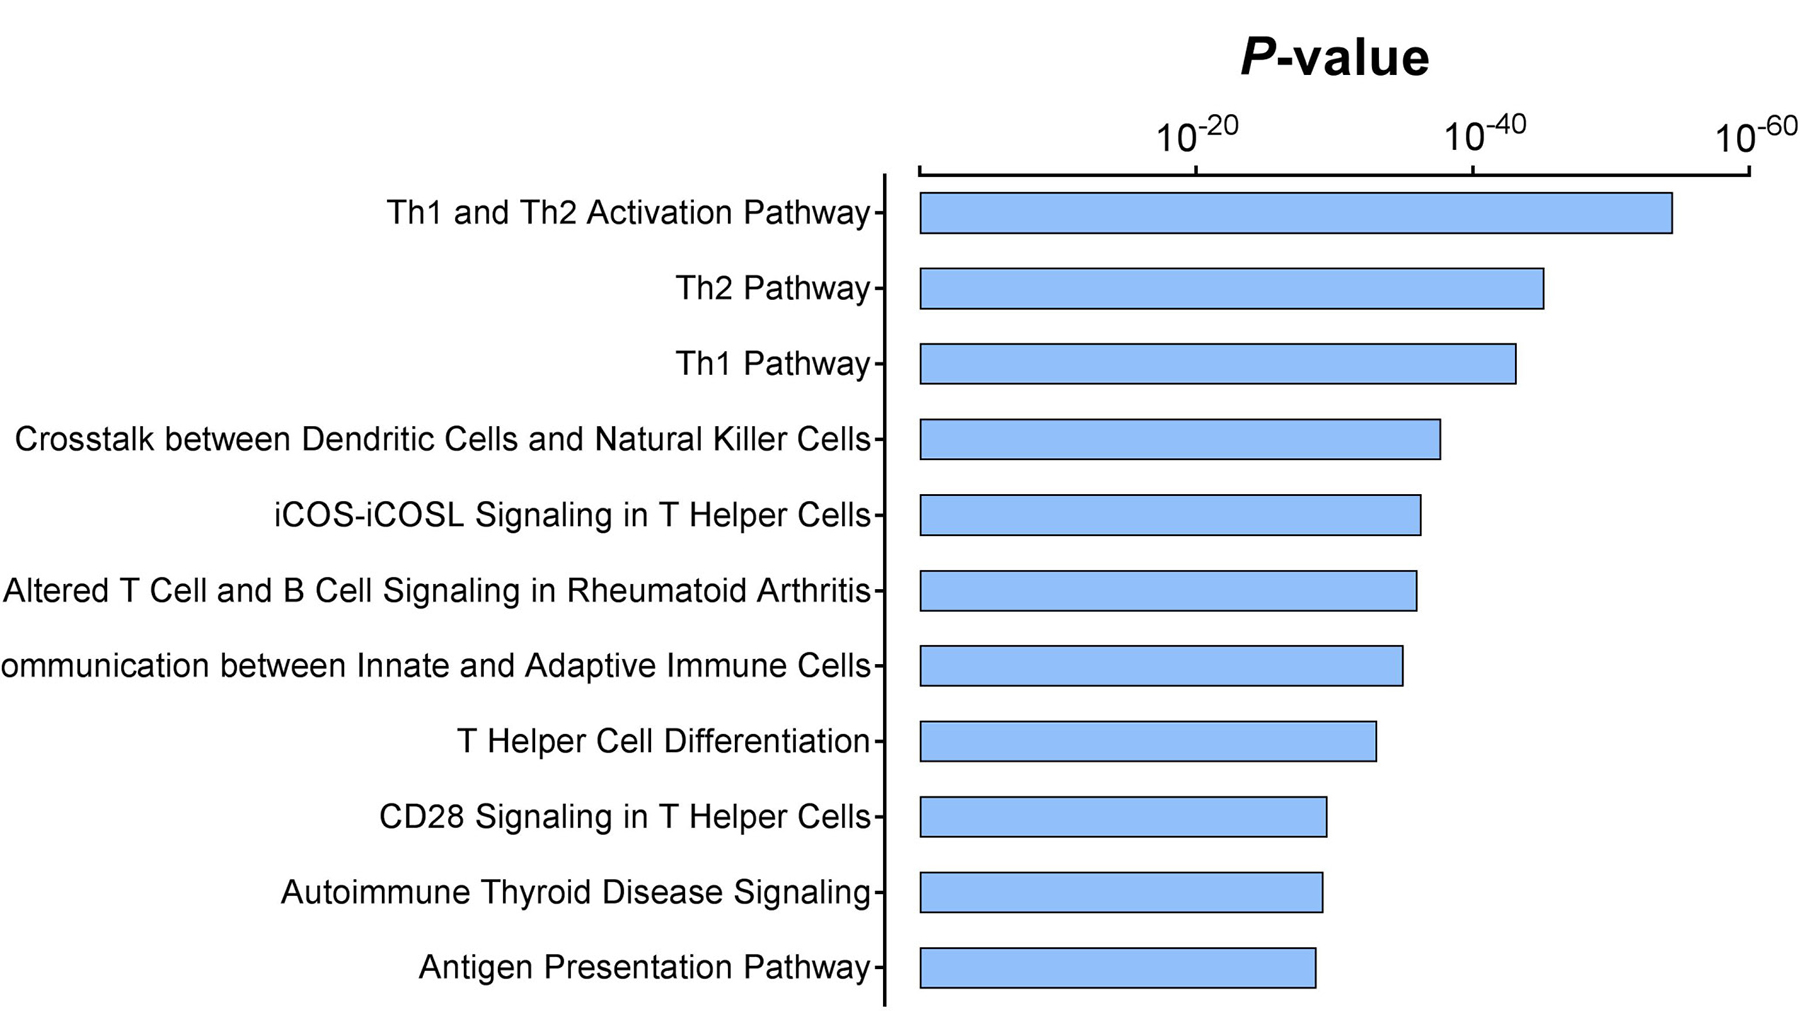 Significantly enriched signaling pathways in the immune gene expression signature.